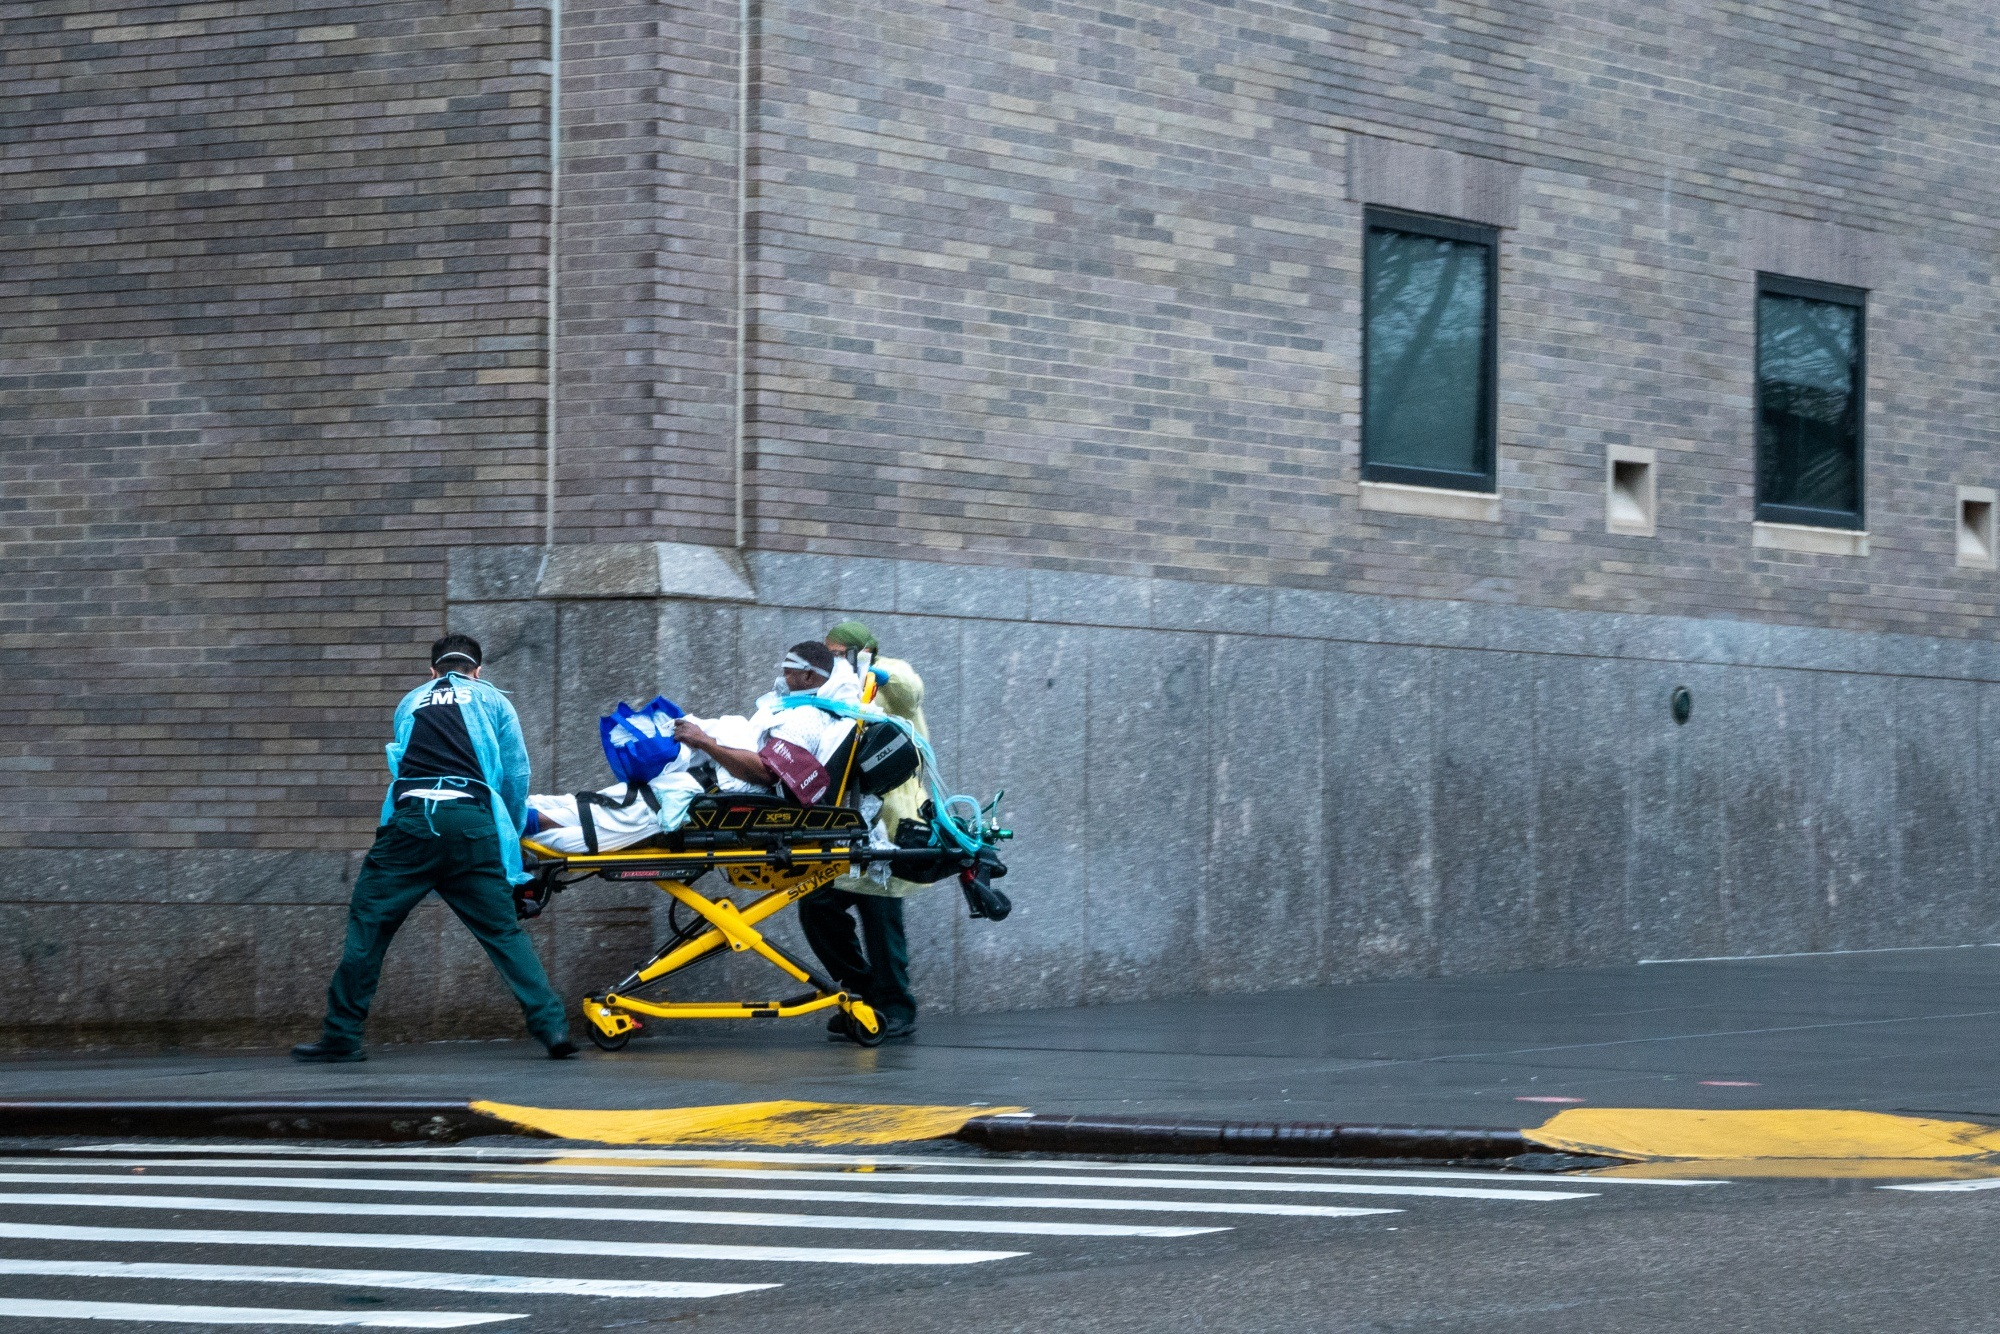 Medical staff transport a patient on the side walk outside of Mount Sinai hospital in New York on April 13